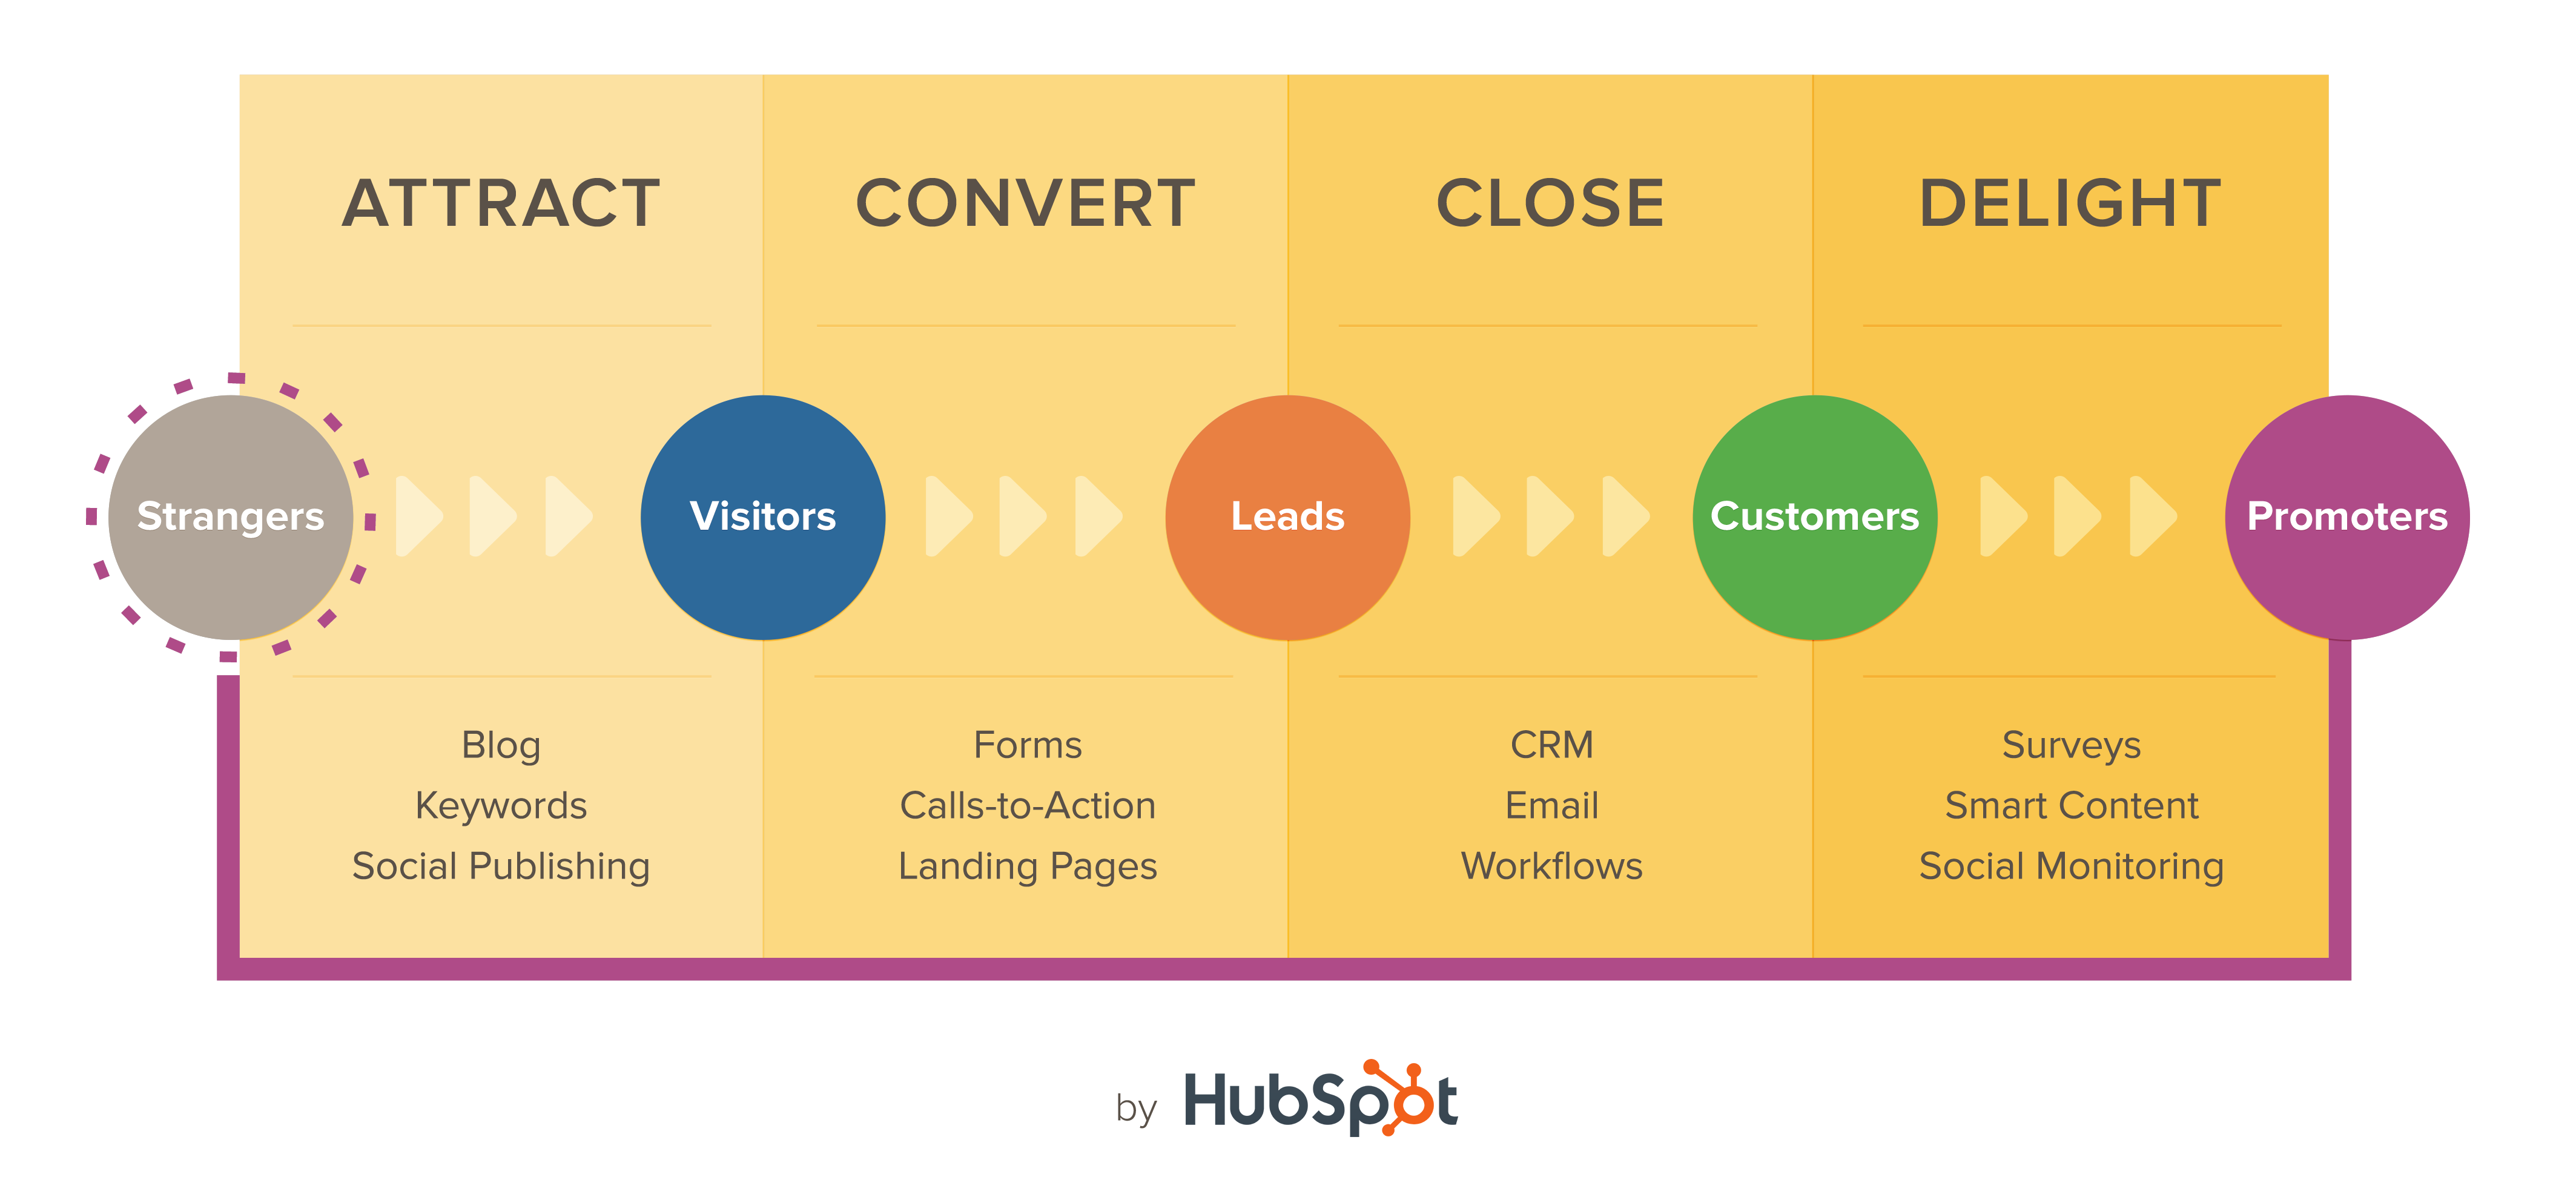 How to Increase ROI with Inbound Marketing